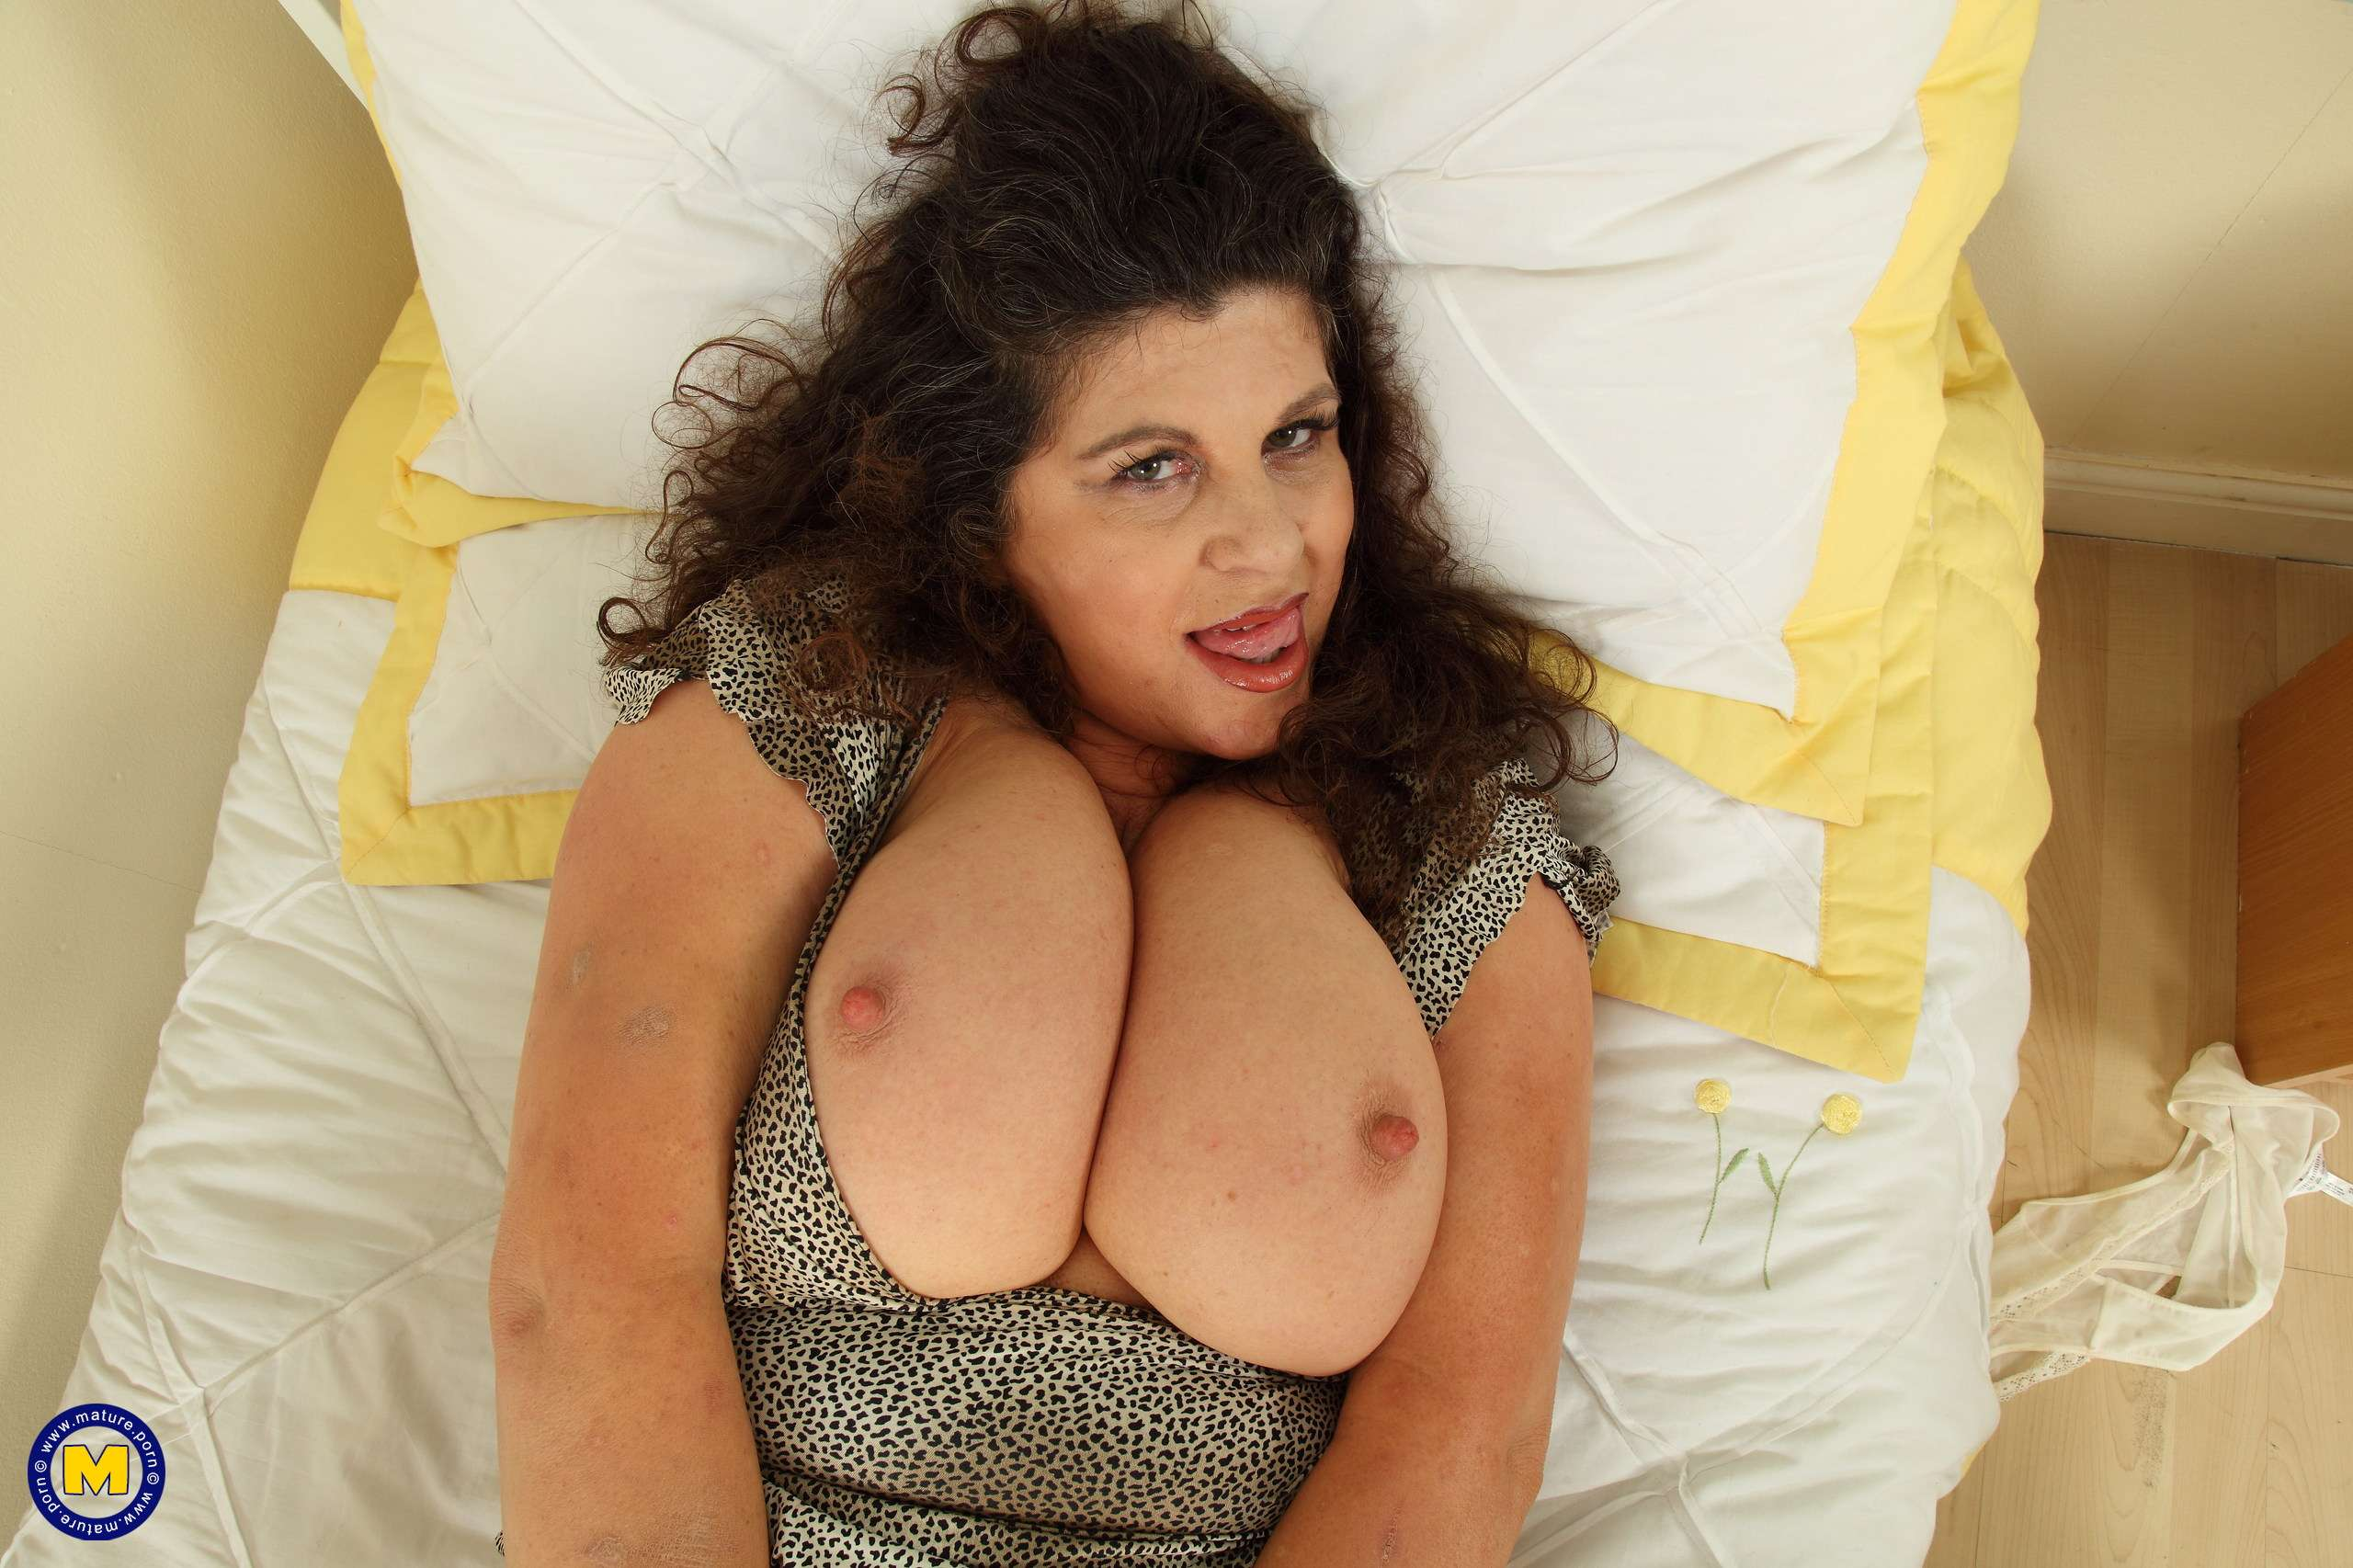 Big breasted Gilly loves to show you her dirty side